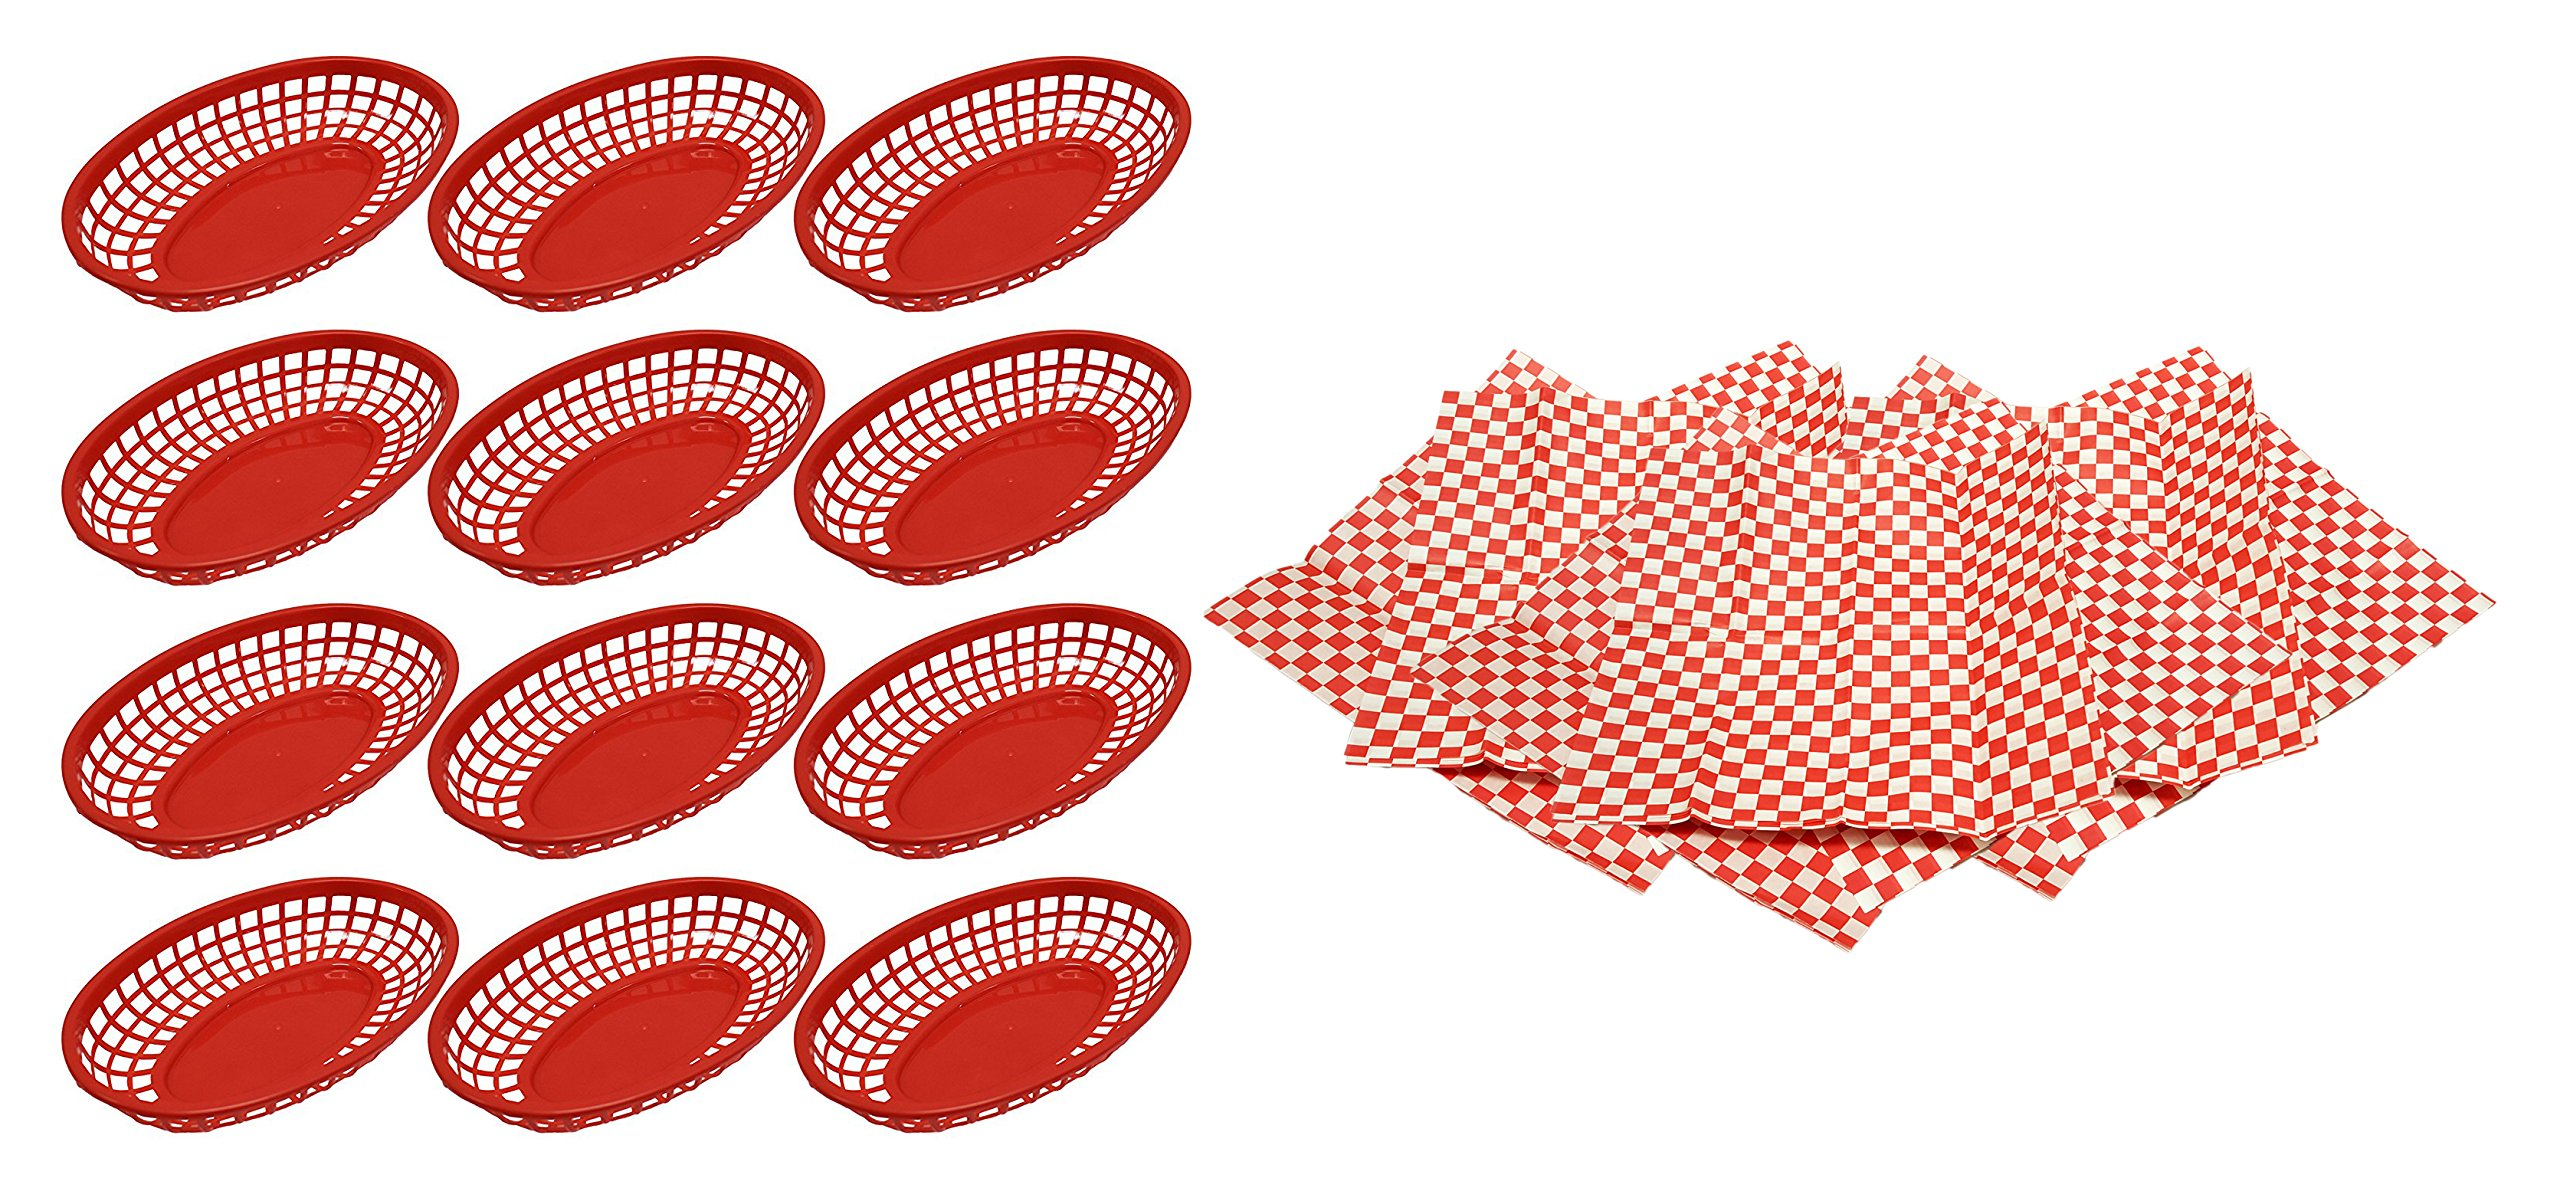 Set of 12 Deli Baskets with 36 Basket Liners! 9.25'' x 5.67'' Oval Restaurant Baskets with 12'' x 12'' Liners Perfect for Restaurants, Deli's, Parties, Events, and More! (36 Liners & 12 Baskets, Red)